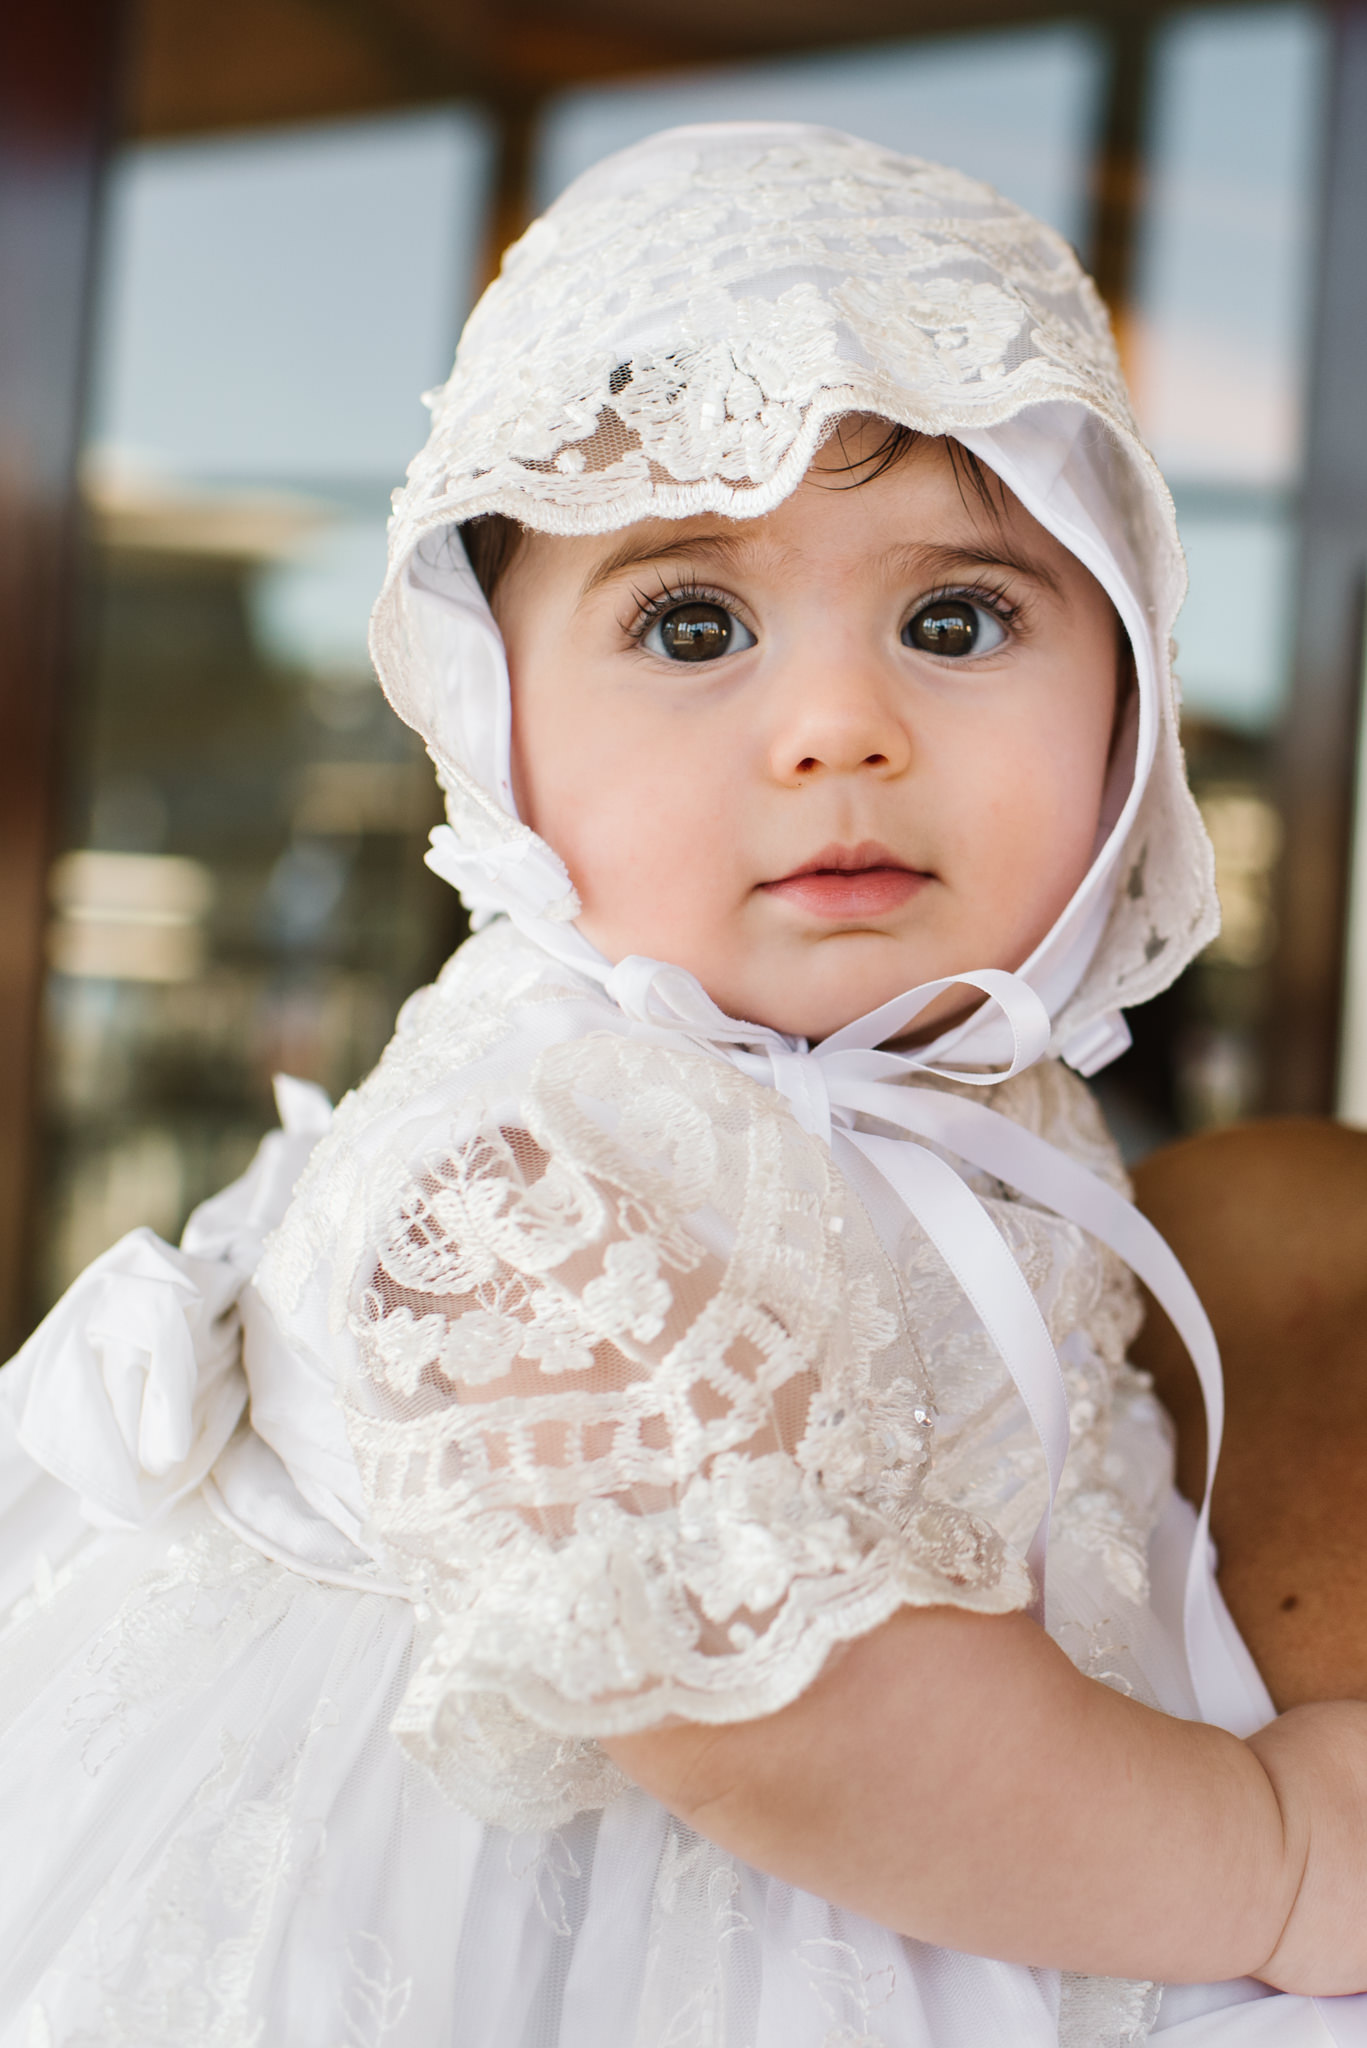 Baby in christening gown and bonnet